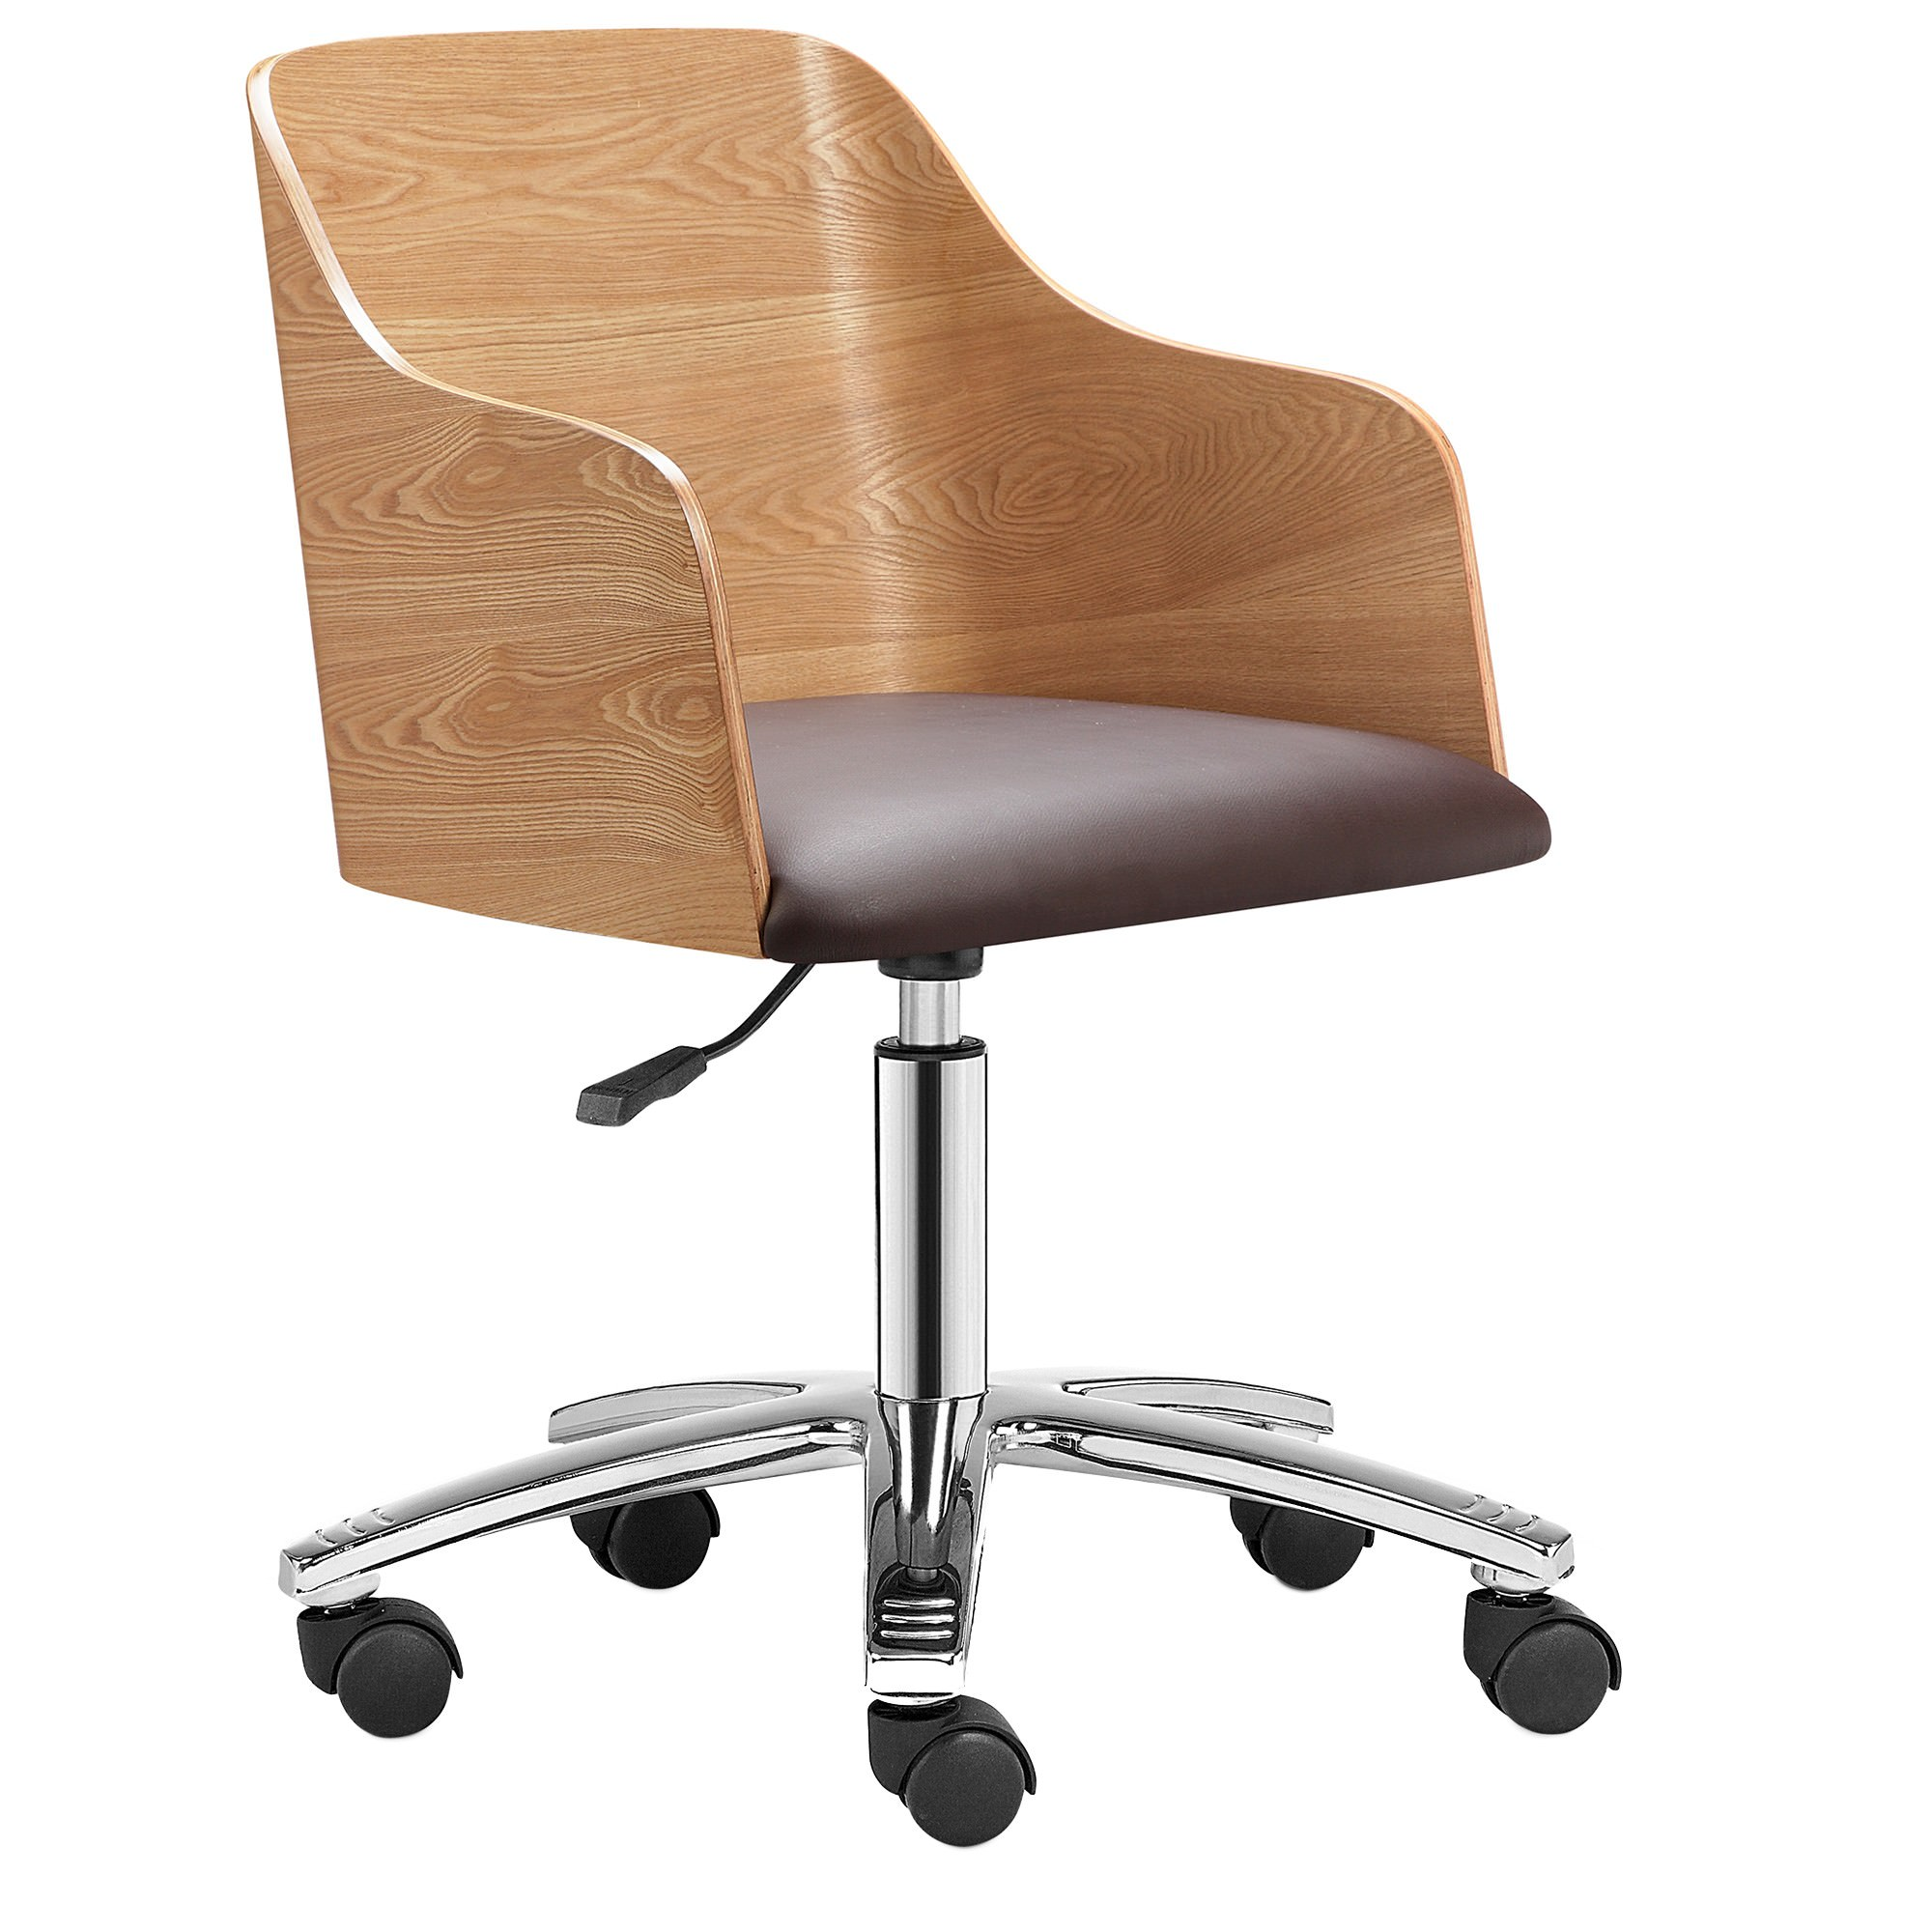 Kito Wooden Office Chair